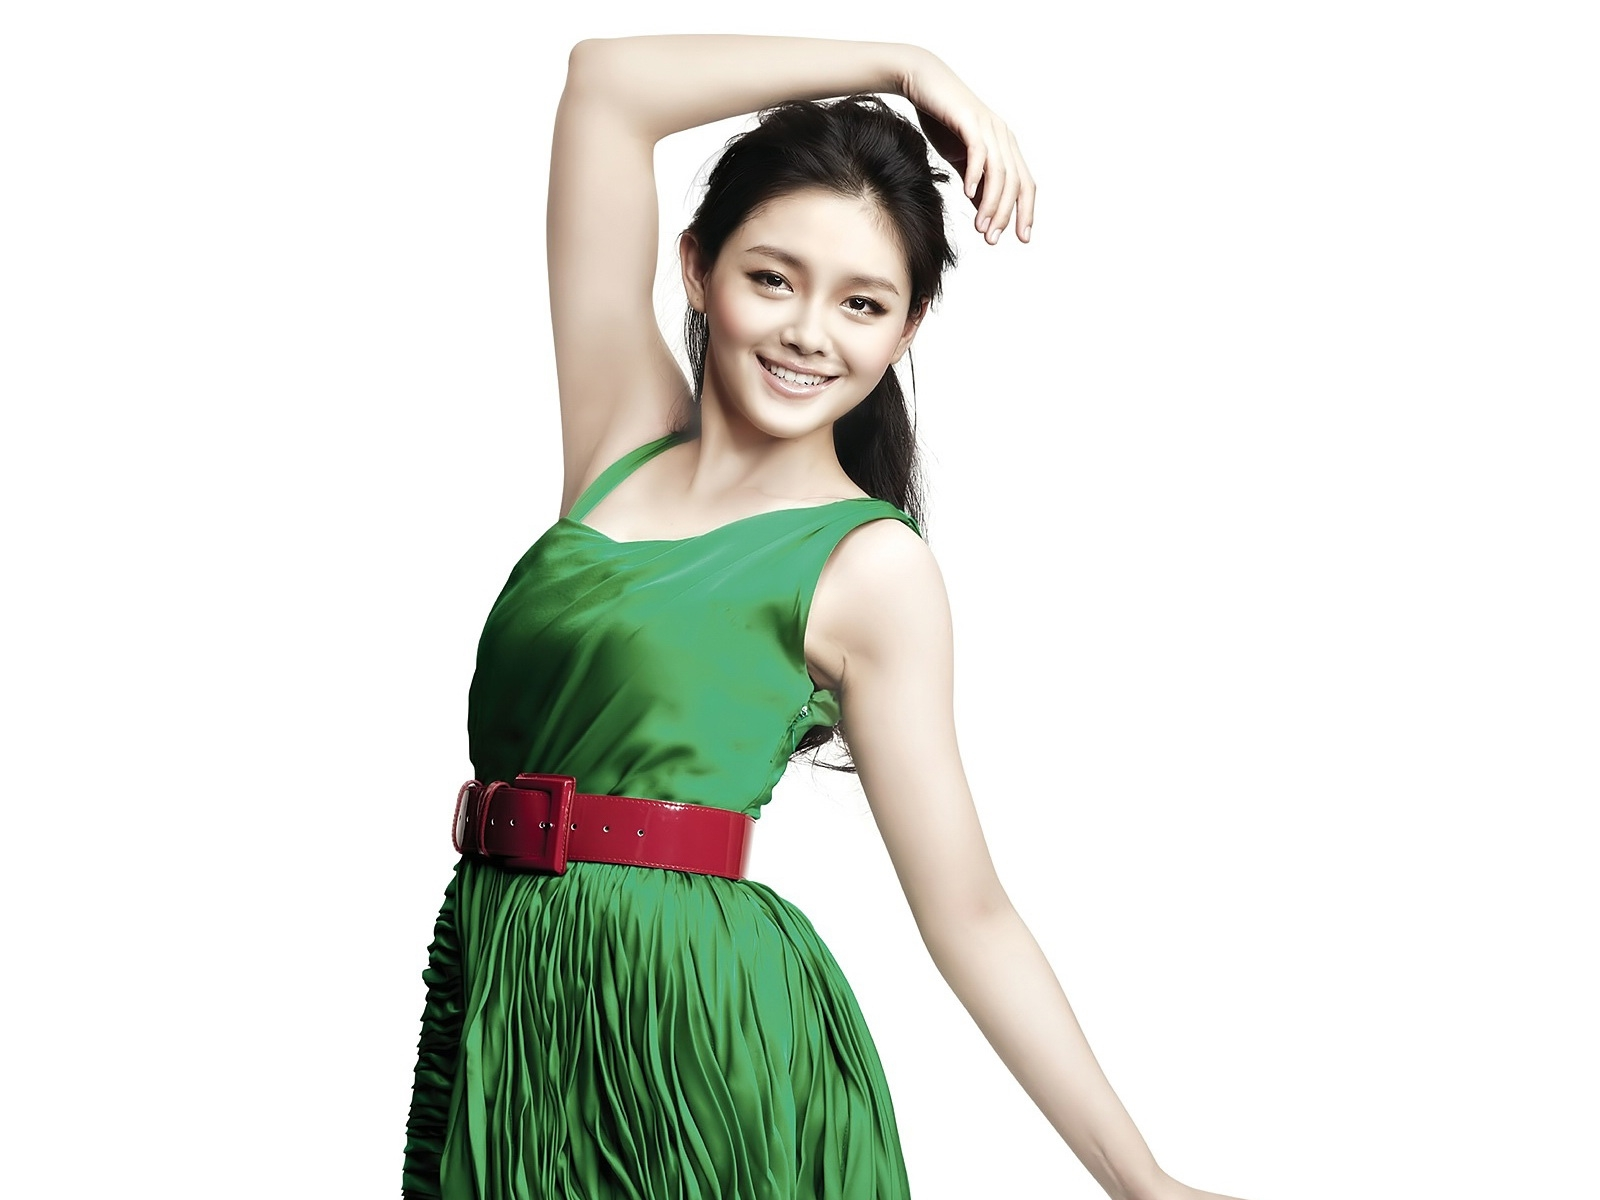 1600x1200 - Barbie Hsu Wallpapers 22